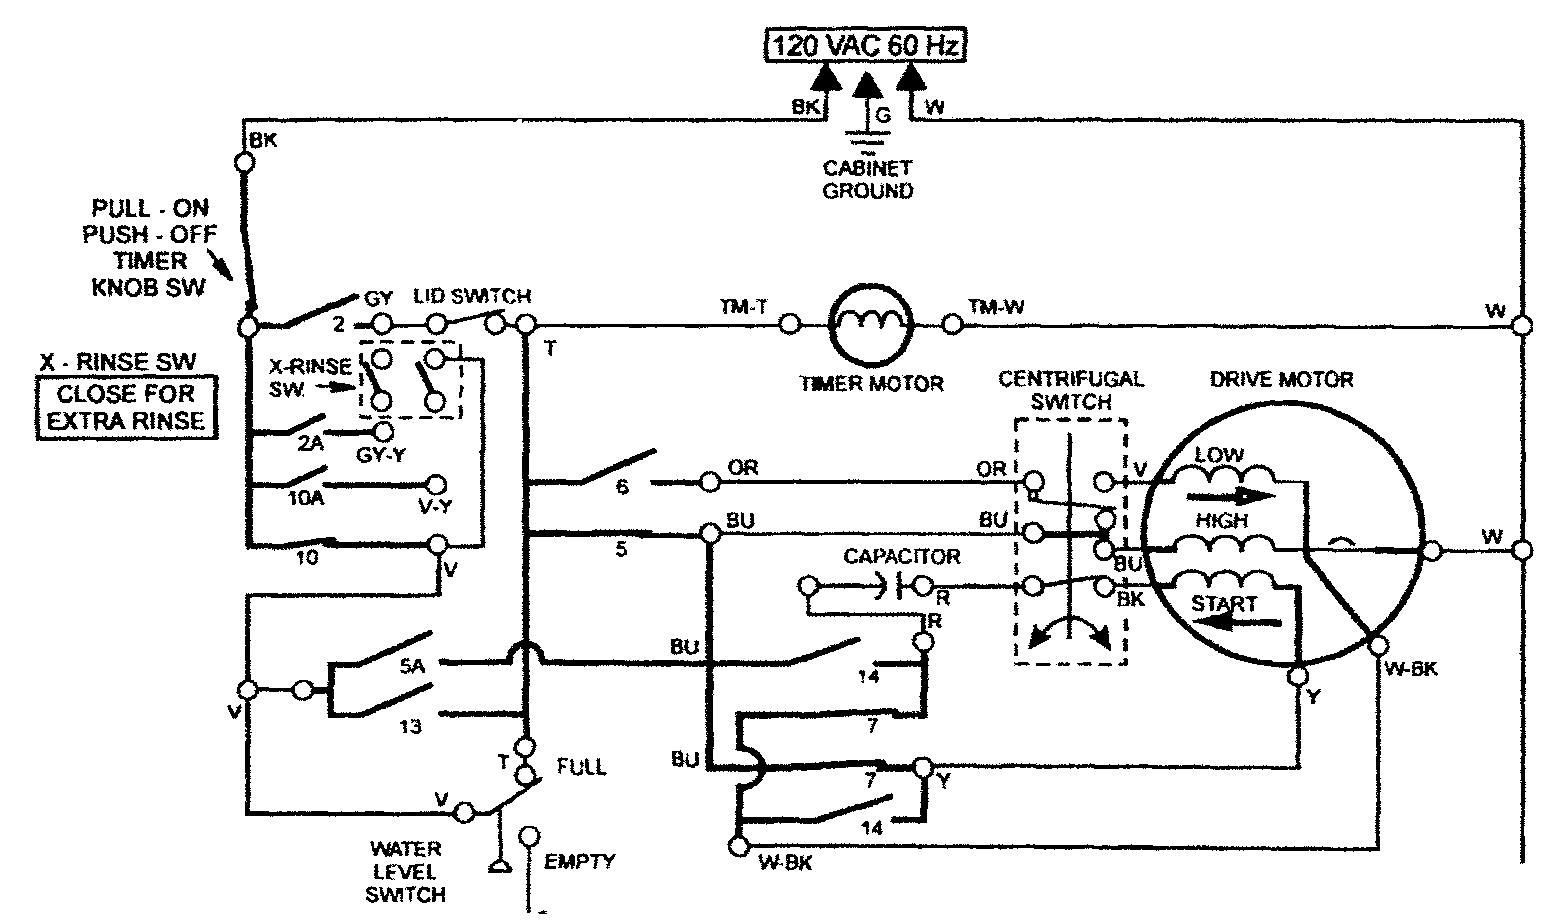 Appliance Course Module Five Figure 5 49 mat course module five sample page washing machine schematic wiring diagram at honlapkeszites.co